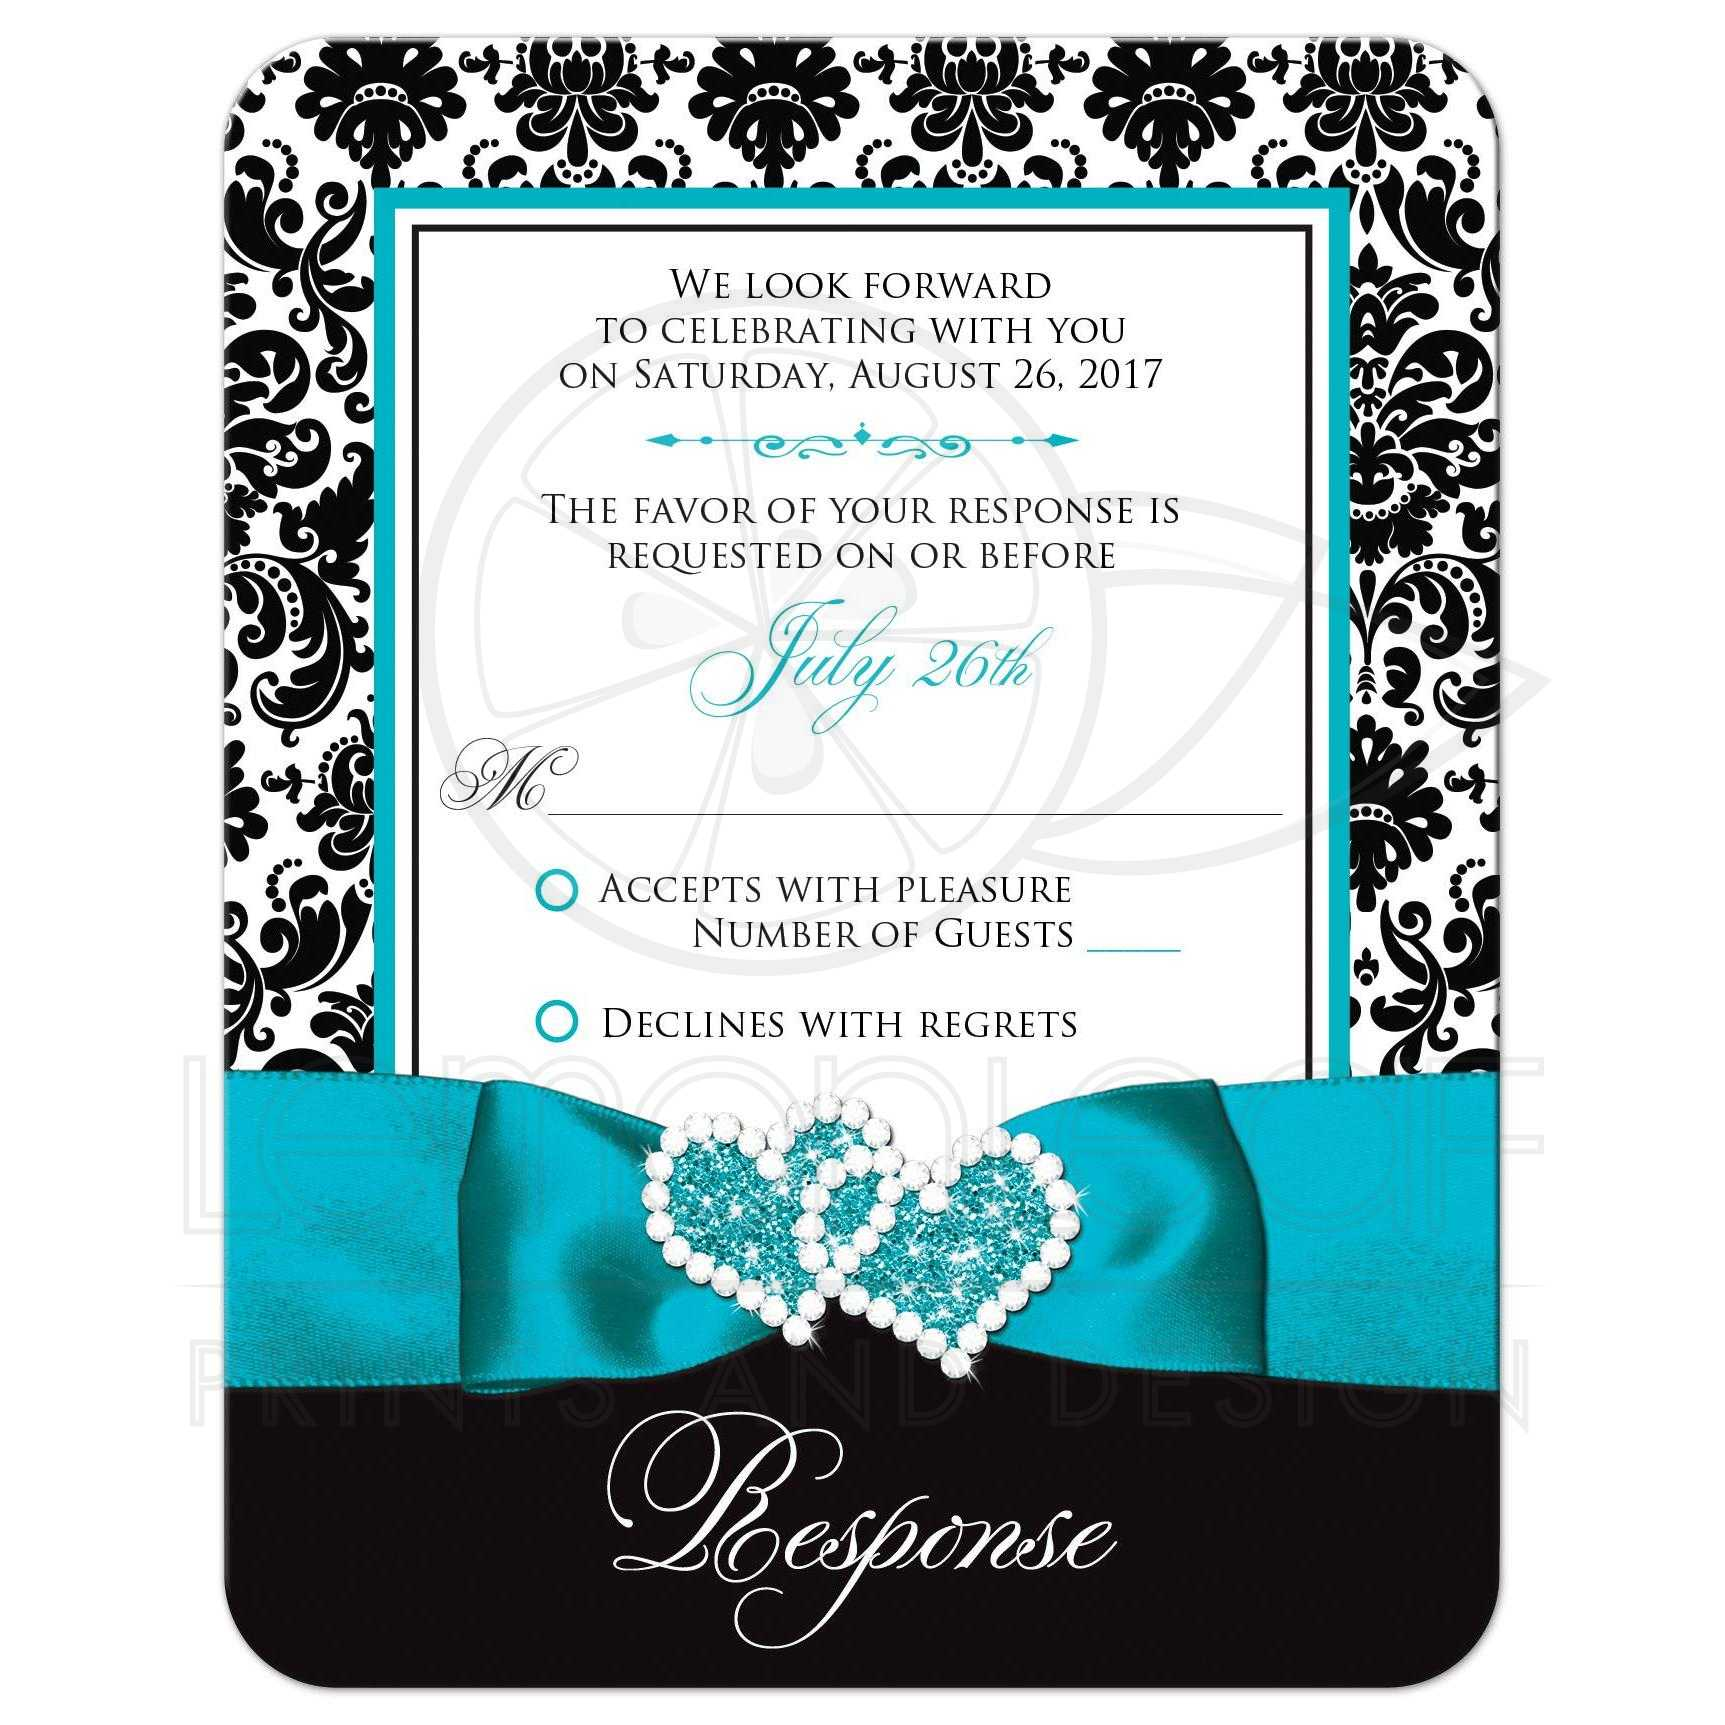 Wedding Response Card | Black and White Damask | PRINTED Turquoise Ribbon &  Double Hearts